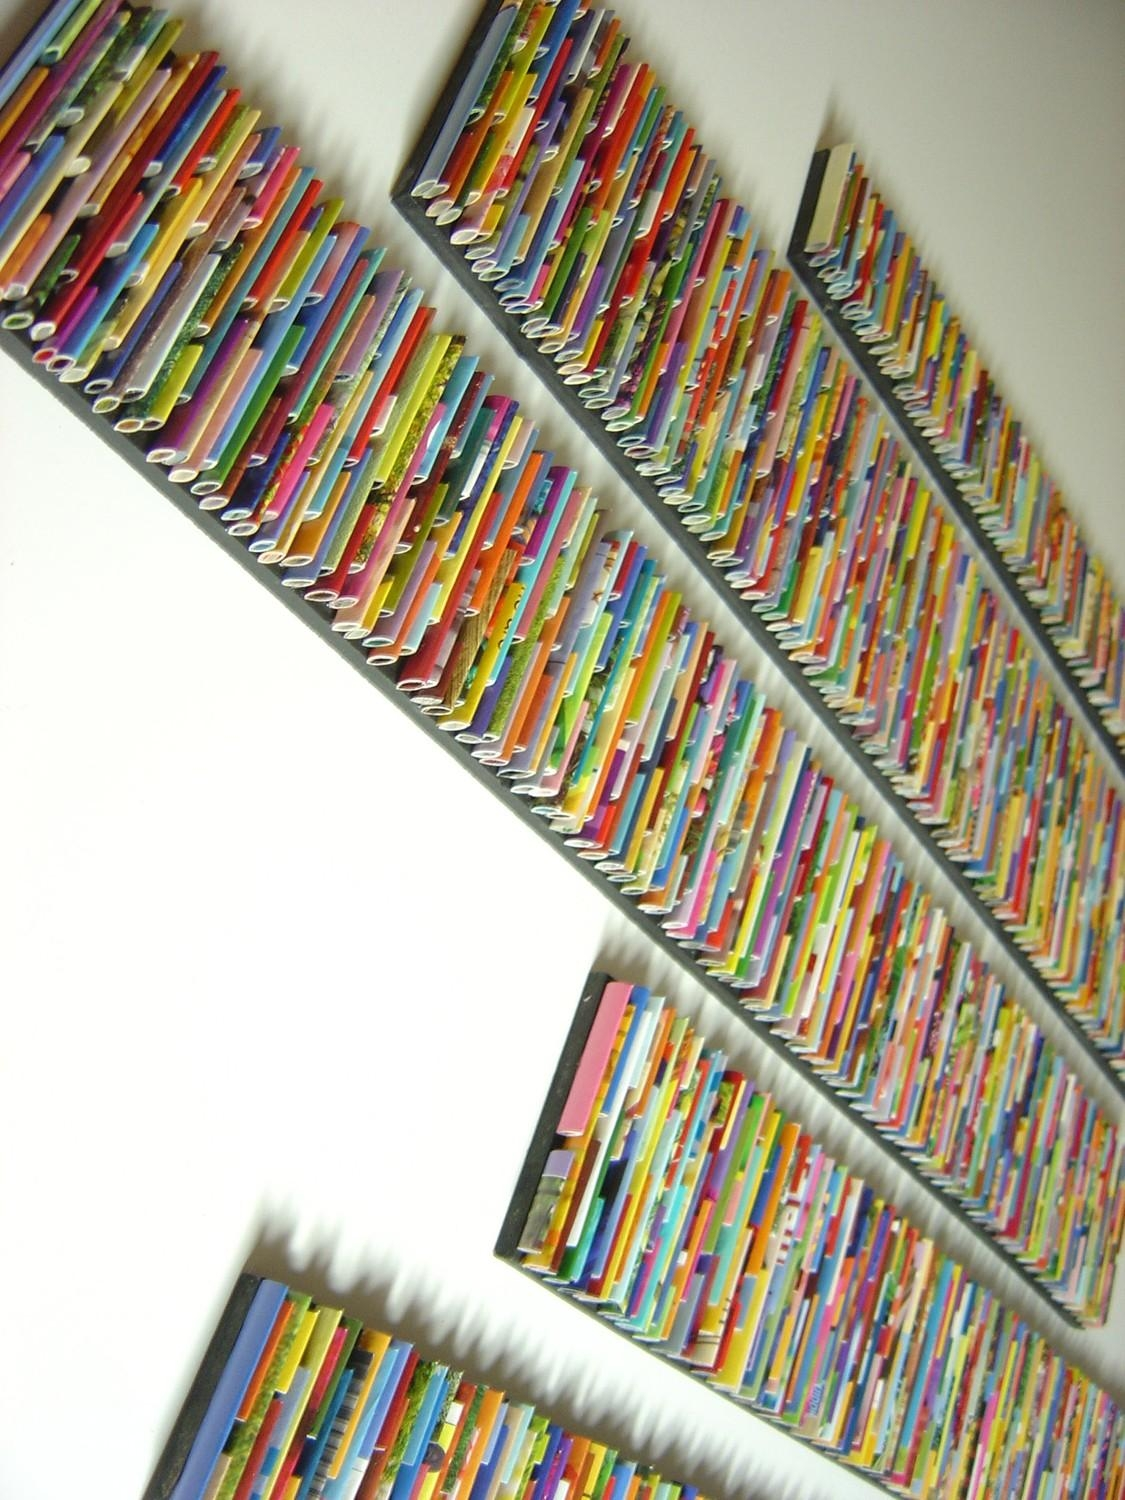 Barcode Wall Art Made From Recycled Magazines Colorful Art Pertaining To Recycled Wall Art (View 3 of 20)